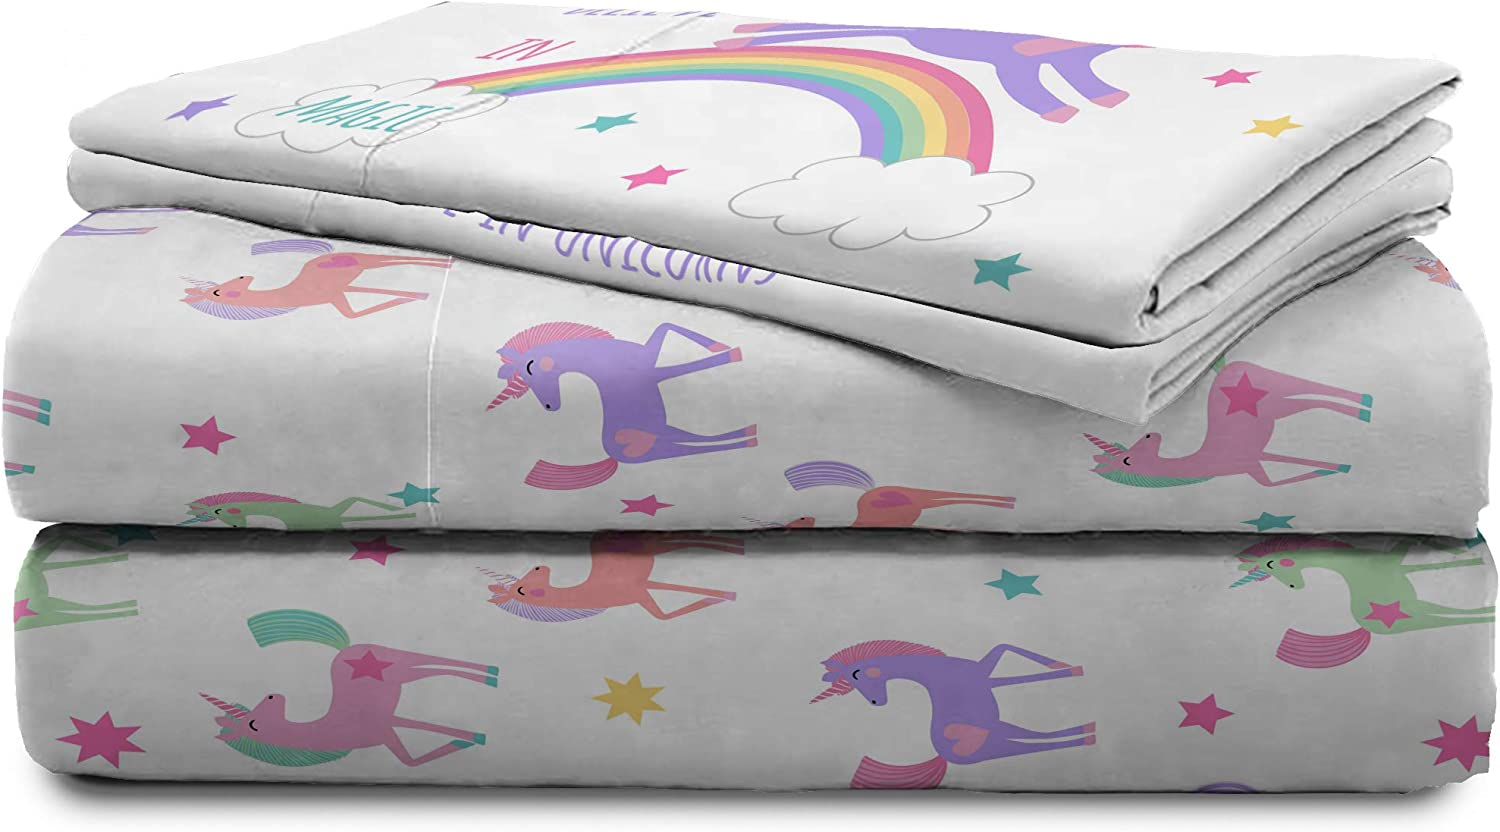 Jay Franco Trend Collector Believe Full Sheet Set 4 Piece Set Super Soft and Cozy Kid/'s Bedding Fade Resistant Microfiber Sheets